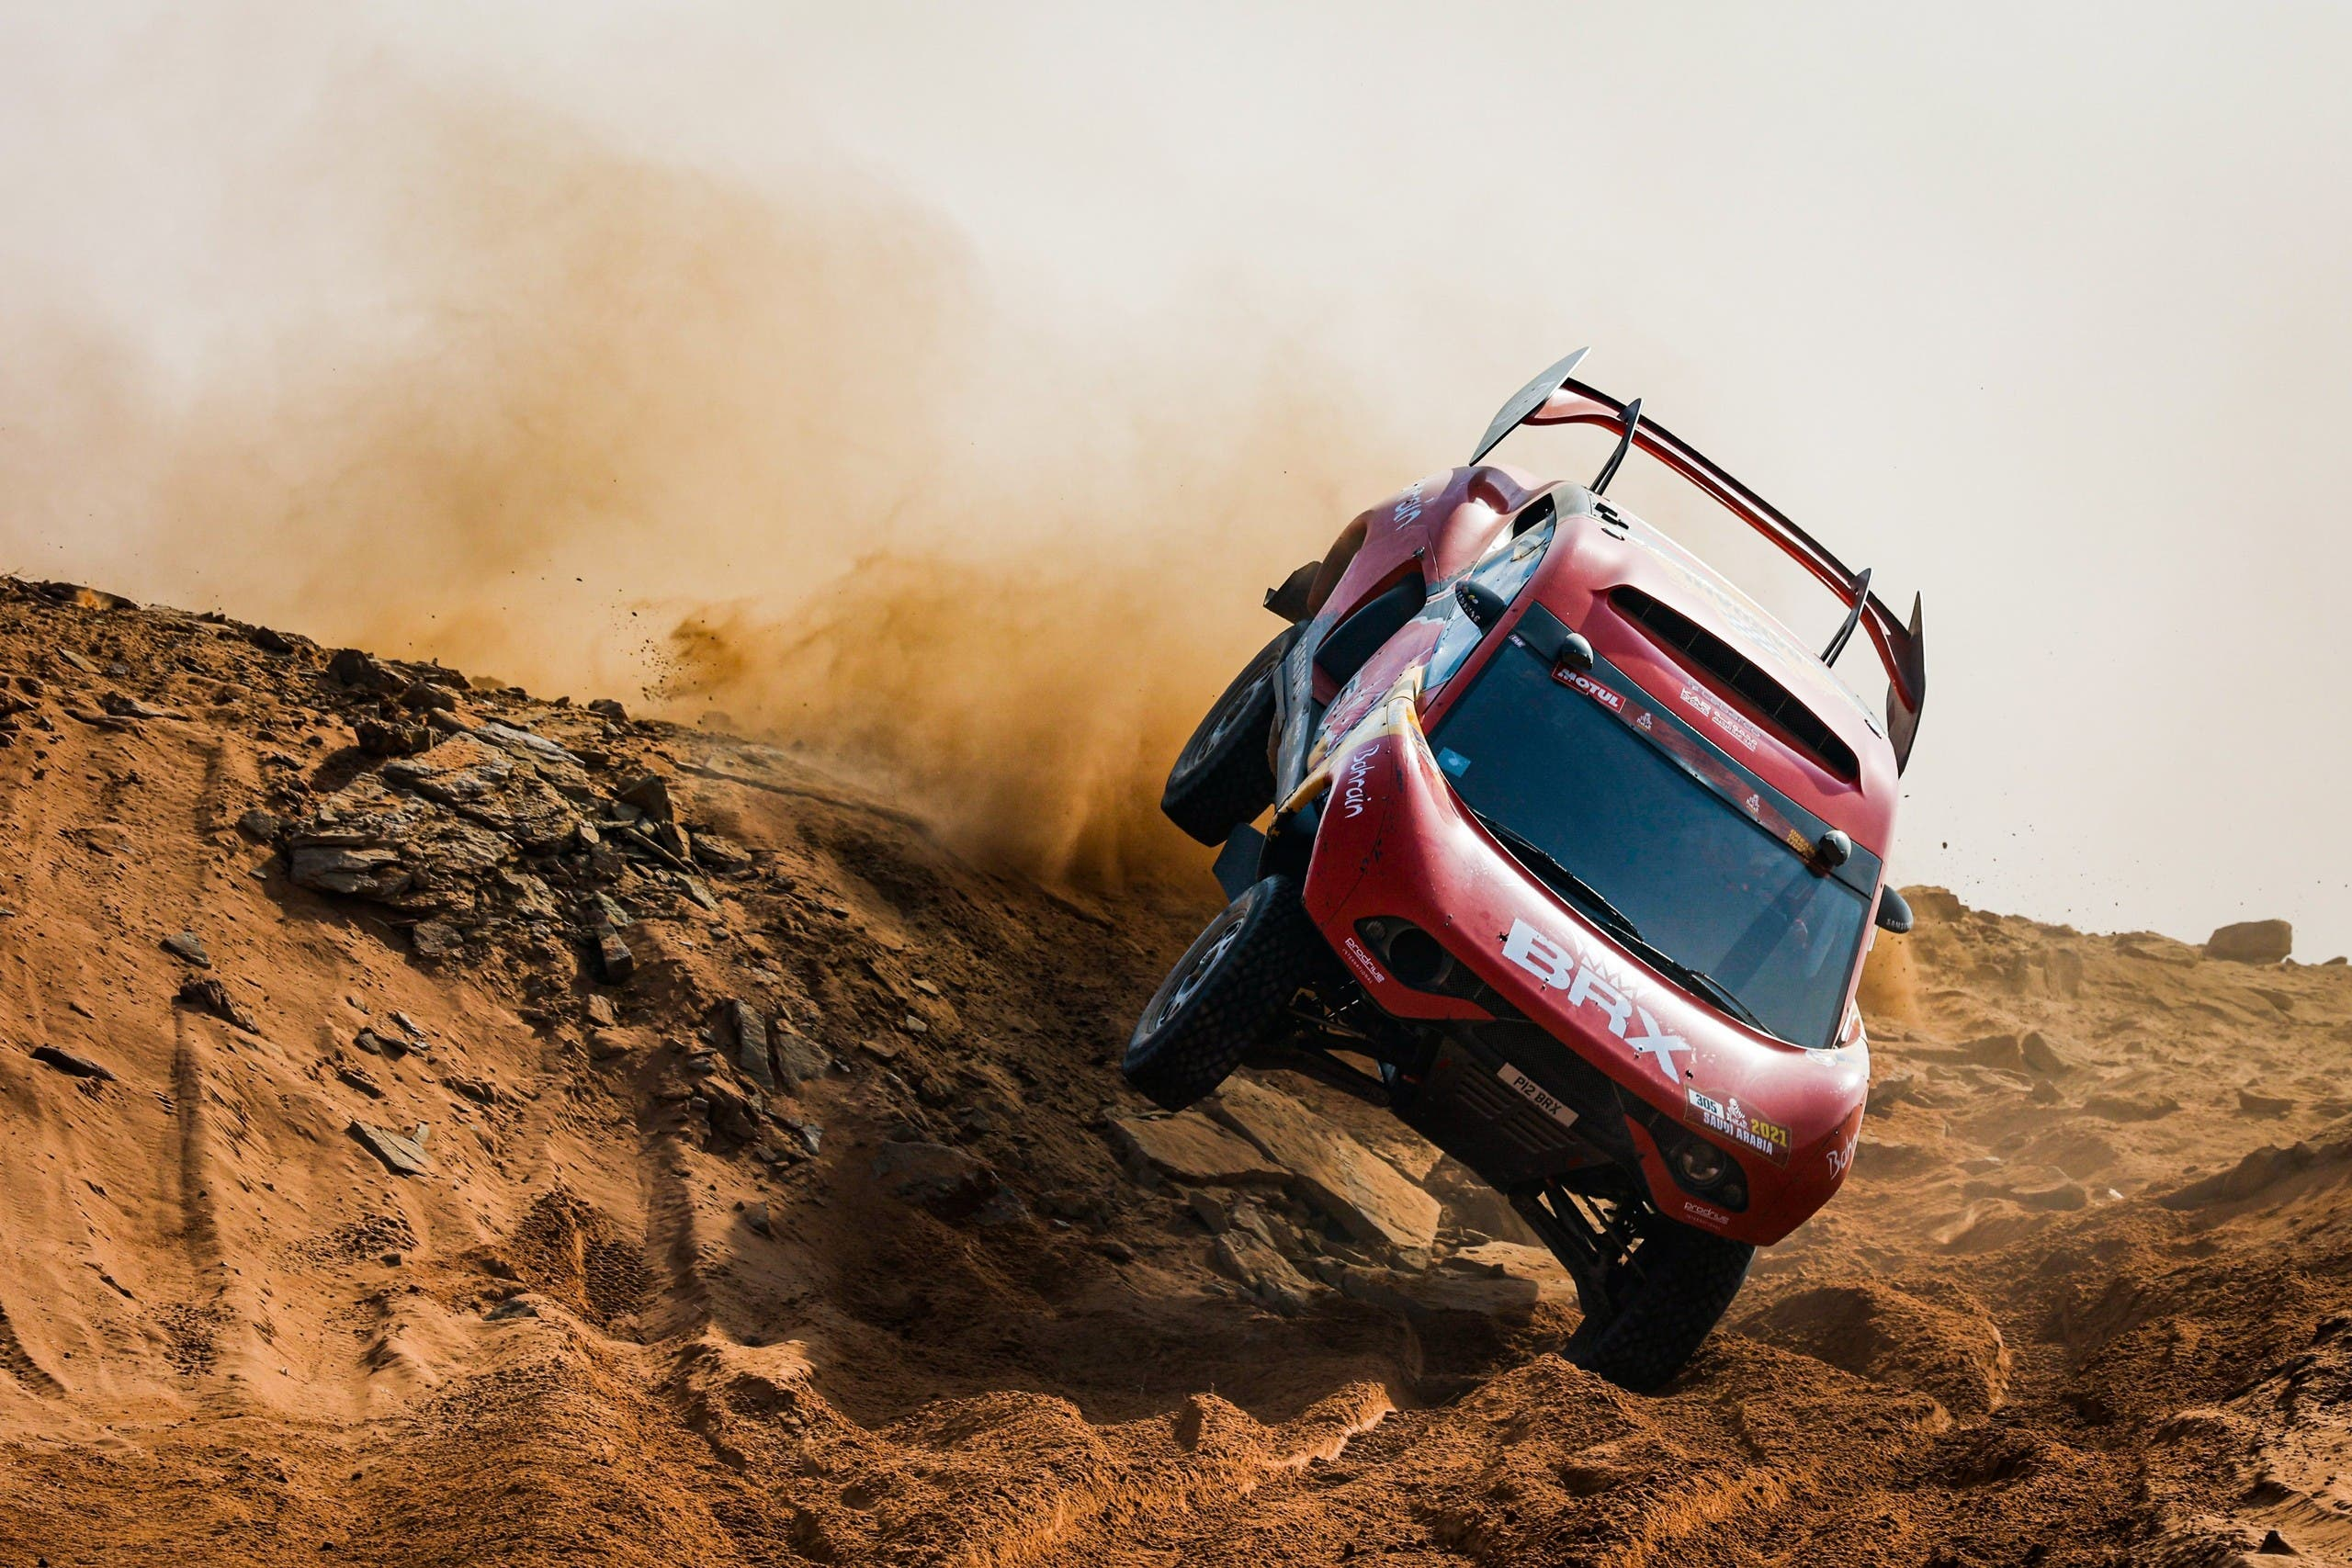 The Hunter powering cross country during the 2021 Dakar Rally. (Supplied)